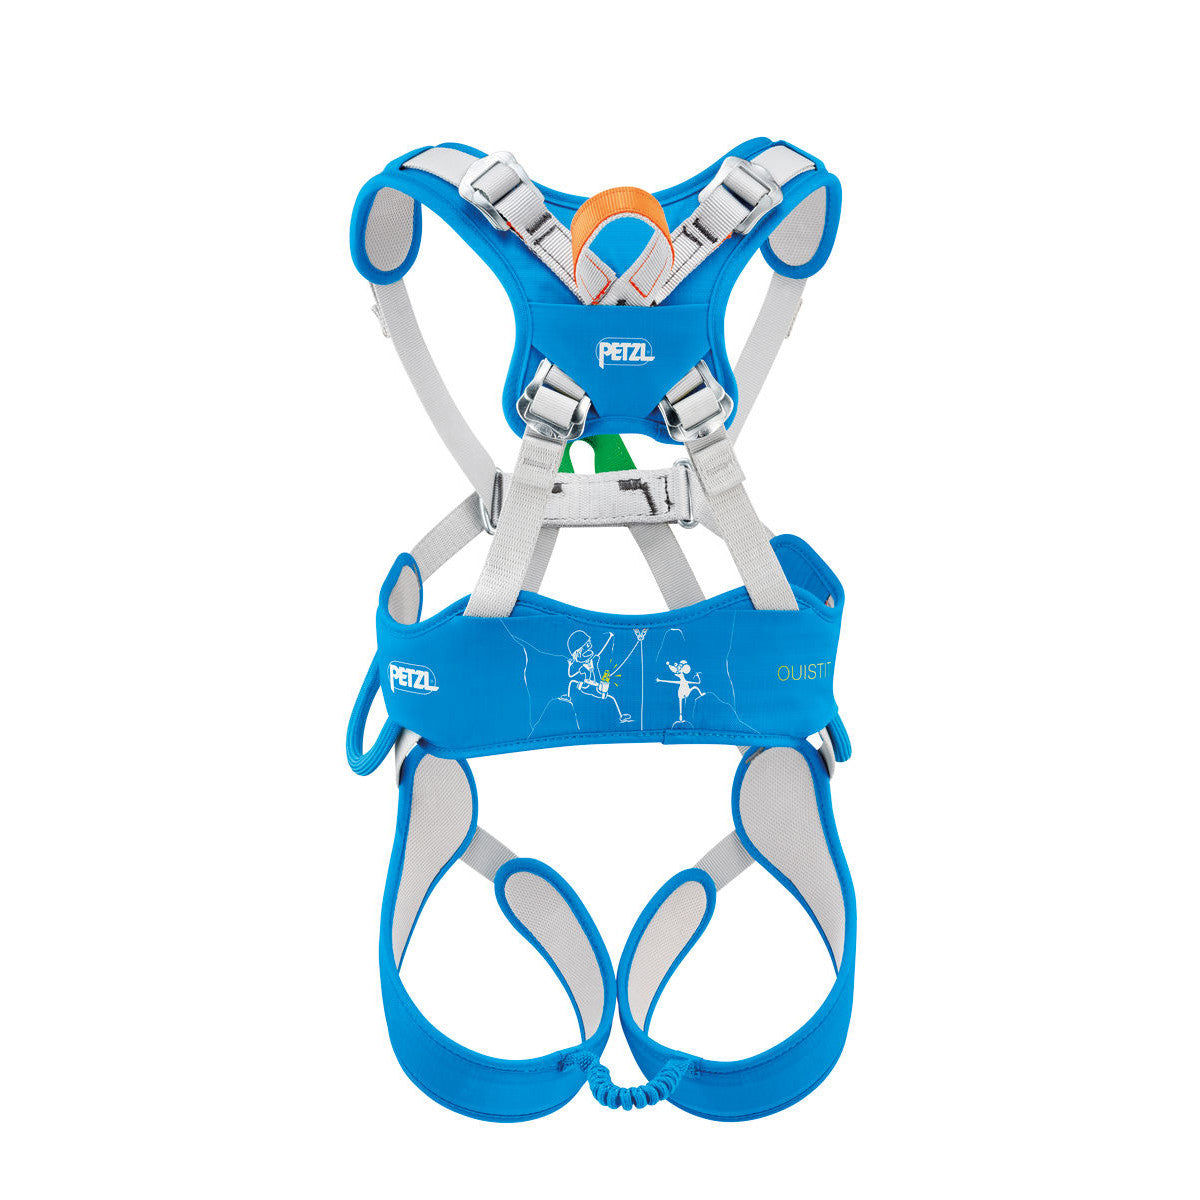 Petzl Ouistiti Kids Harness, rear view, in Blue and Grey colours